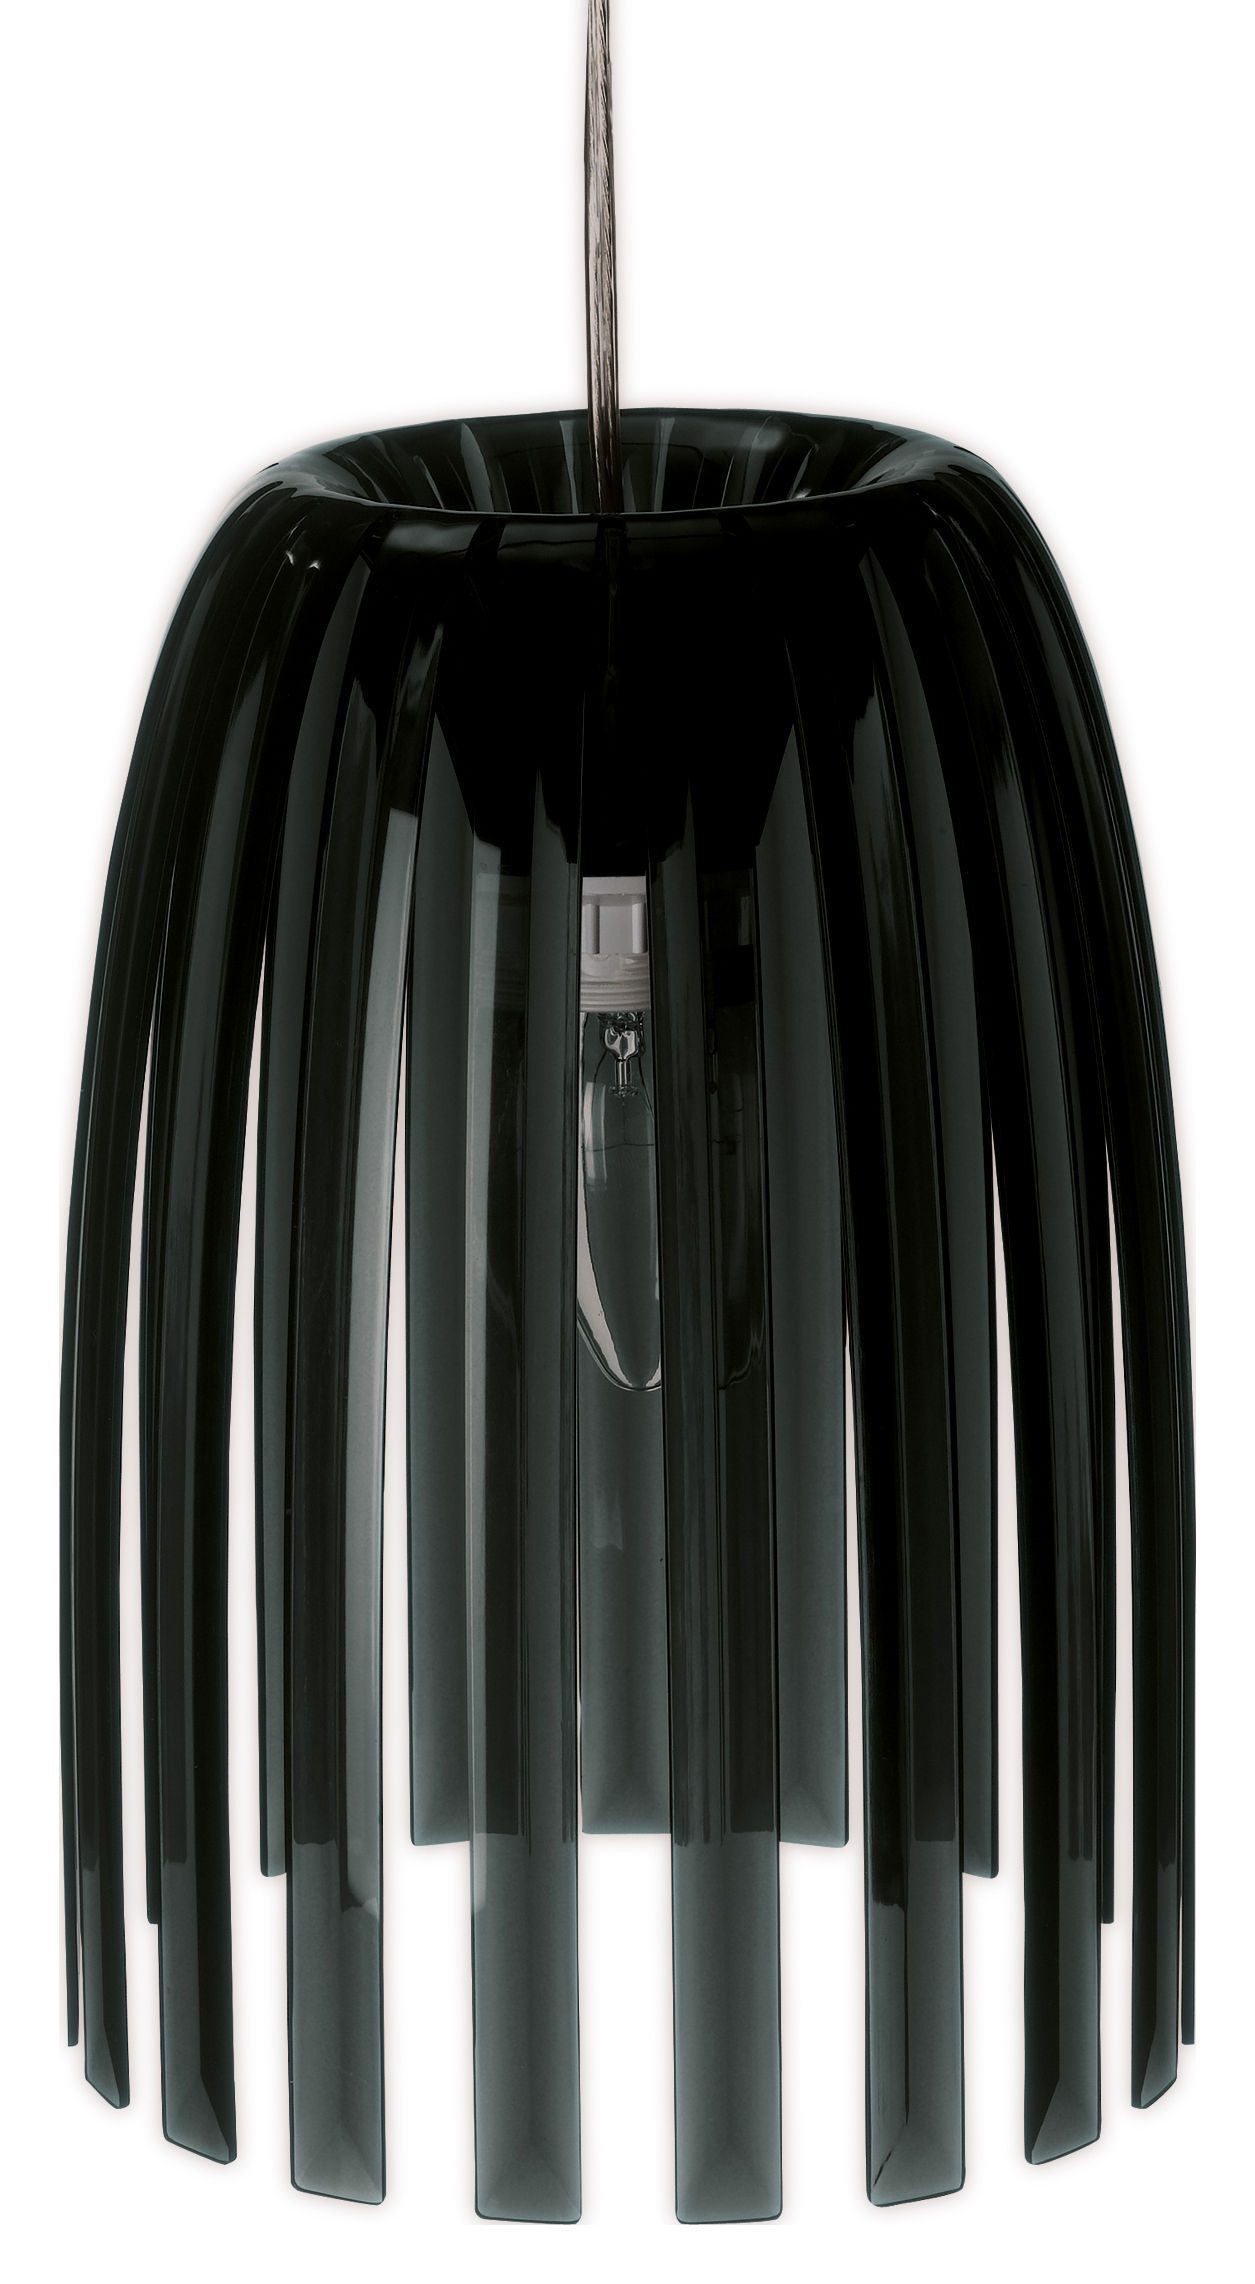 Lighting - Pendant Lighting - Josephine Small Pendant - / Ø 21,8 cm x H 27,6 cm by Koziol - Solid black - Polystirol